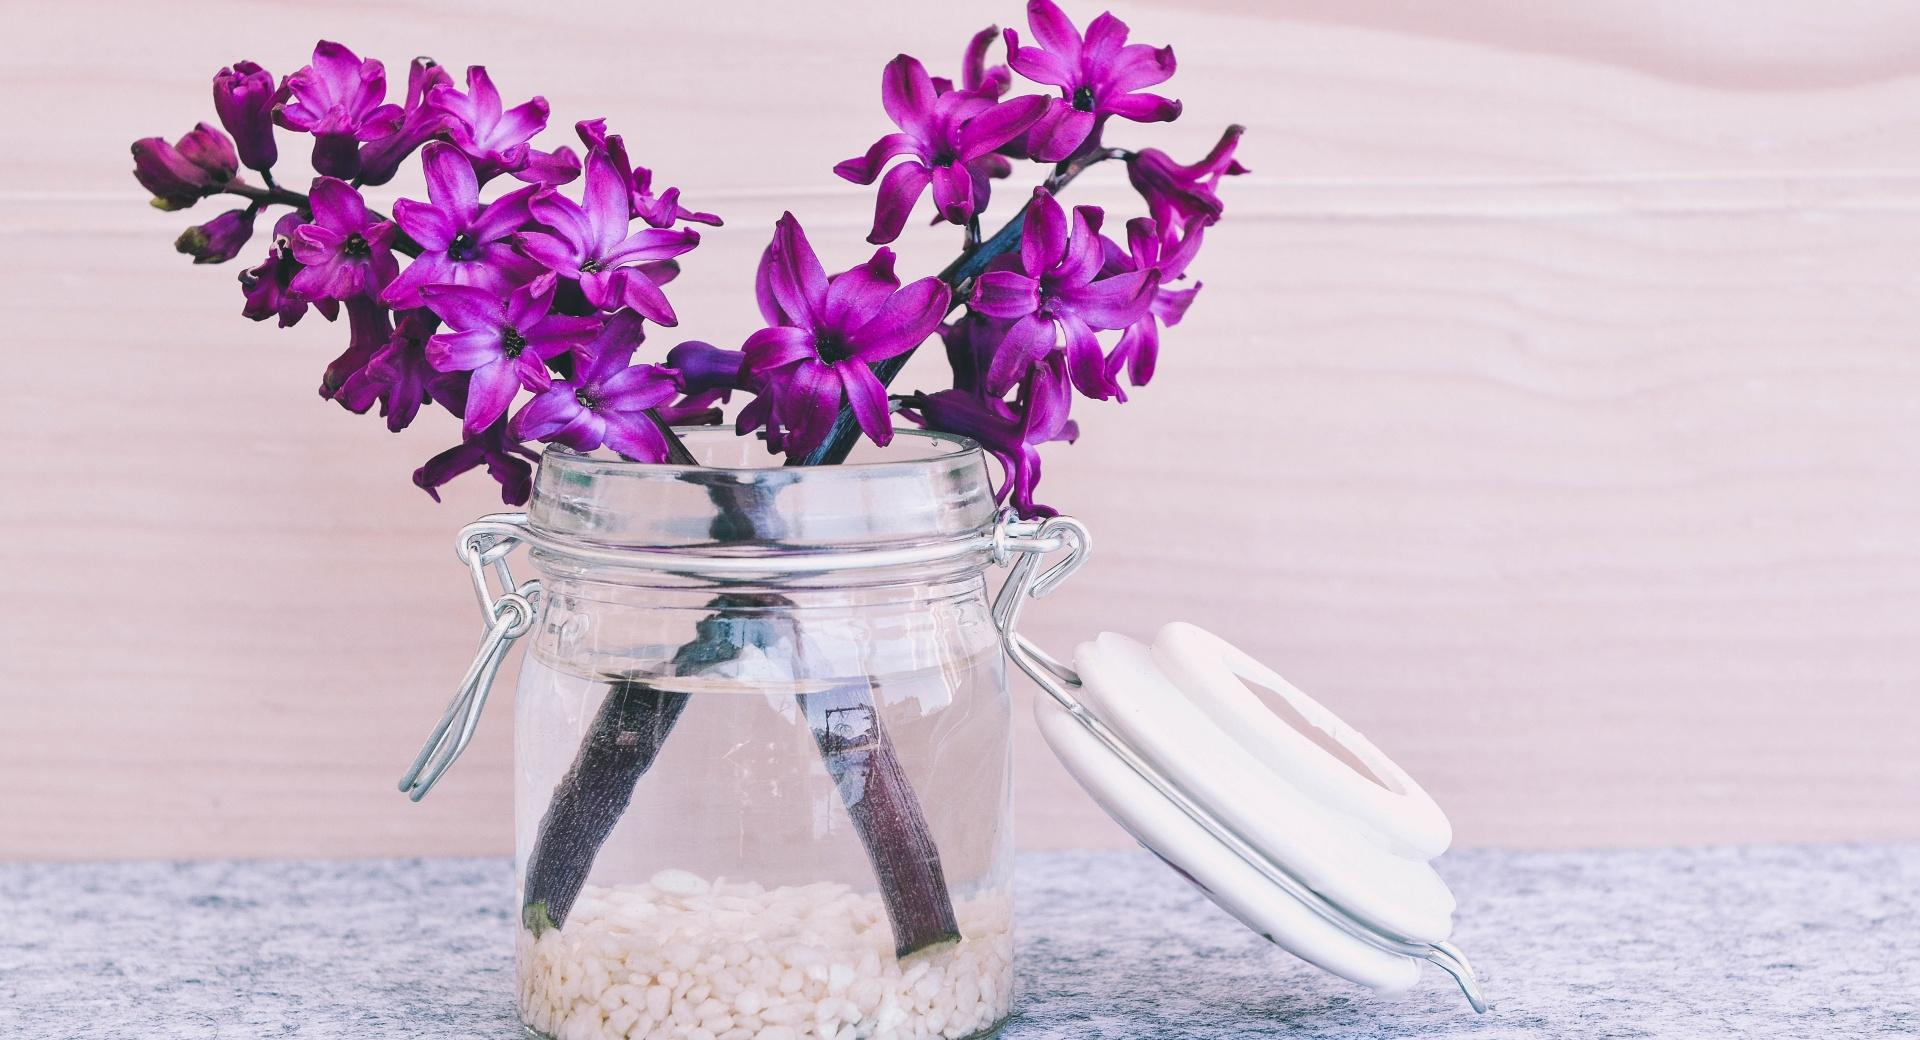 Hyacinths wallpapers HD quality